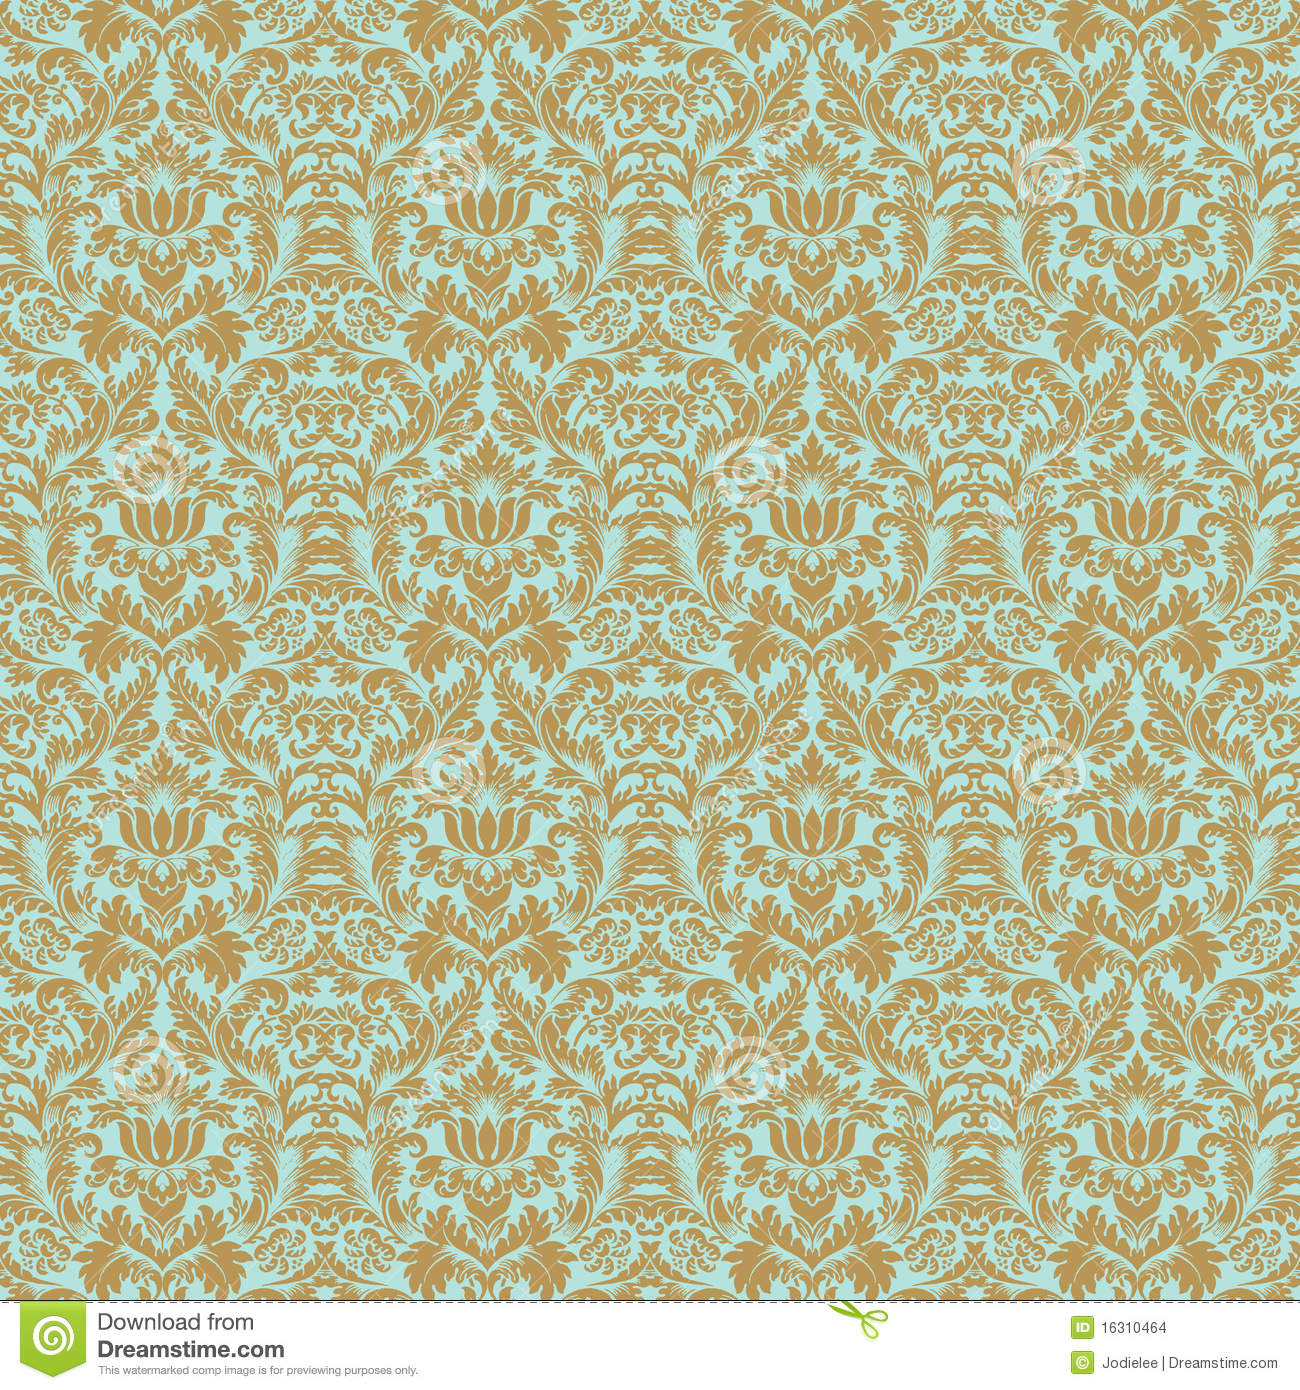 Aqua gold floral wedding damask seamless pattern